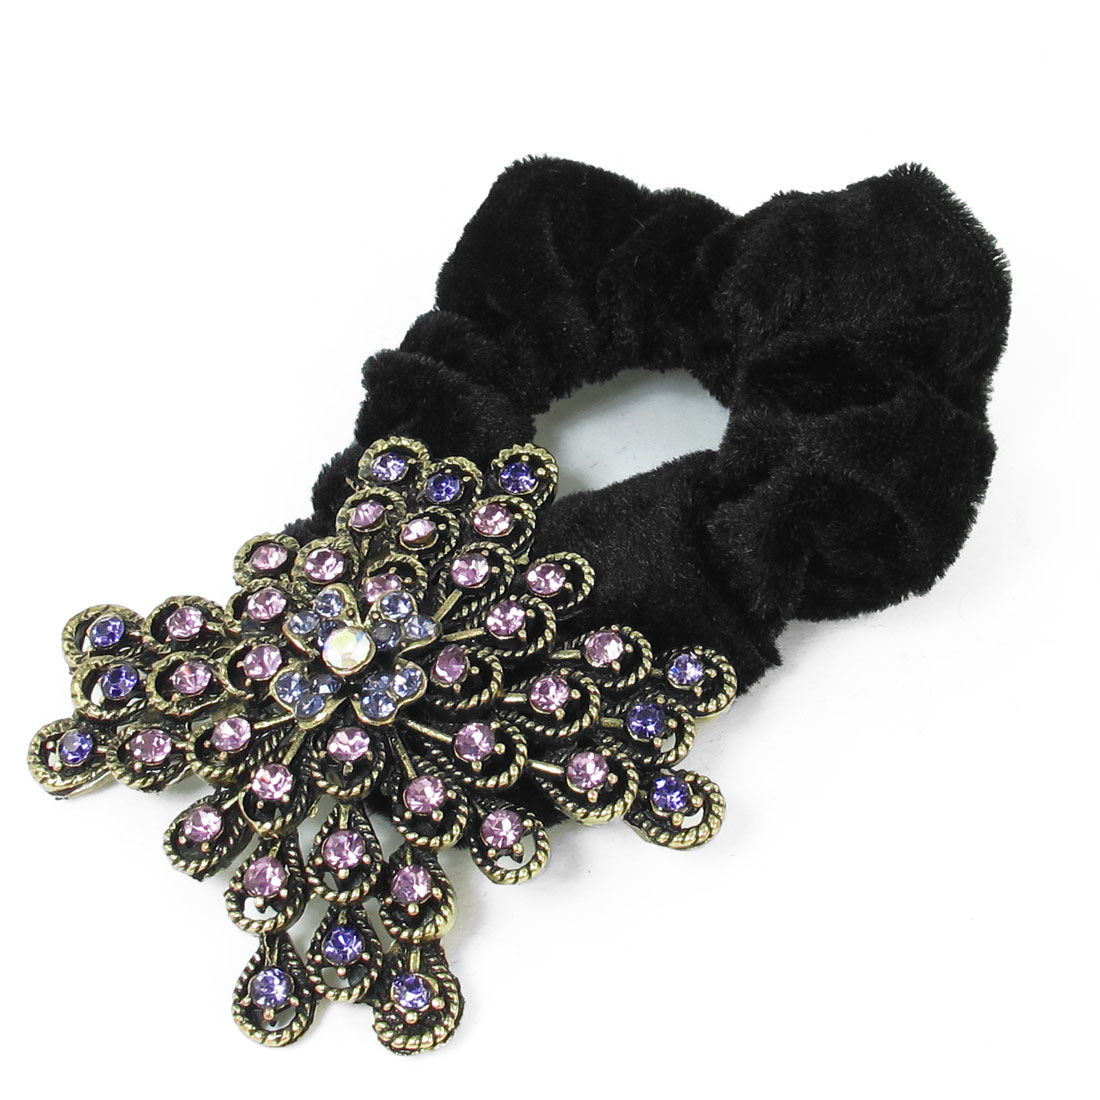 Ladies Pink Purple Rhinestone Inlaid Flower Detail Hair Tie Ponytail Holder